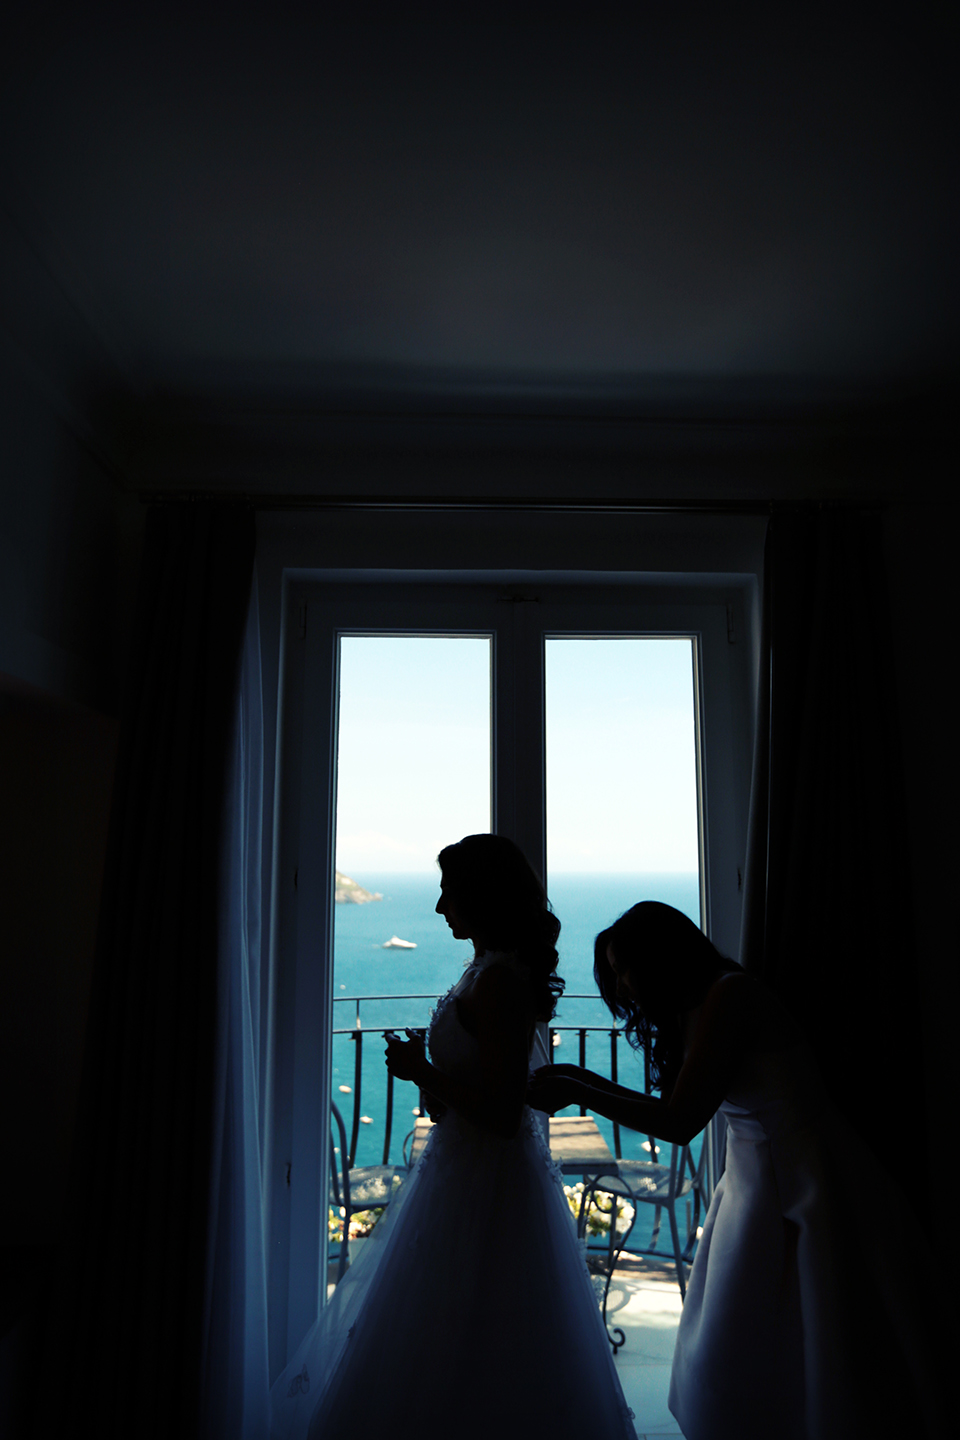 positano-weddin-photographers-italy-wedding-photographers-destination-wedding-photographers-estilo-best-wedding-photographers-in-the-world-casper-bosman-wedding-gown-wedding-style-stylish-modern-wedding-photography-012.jpg